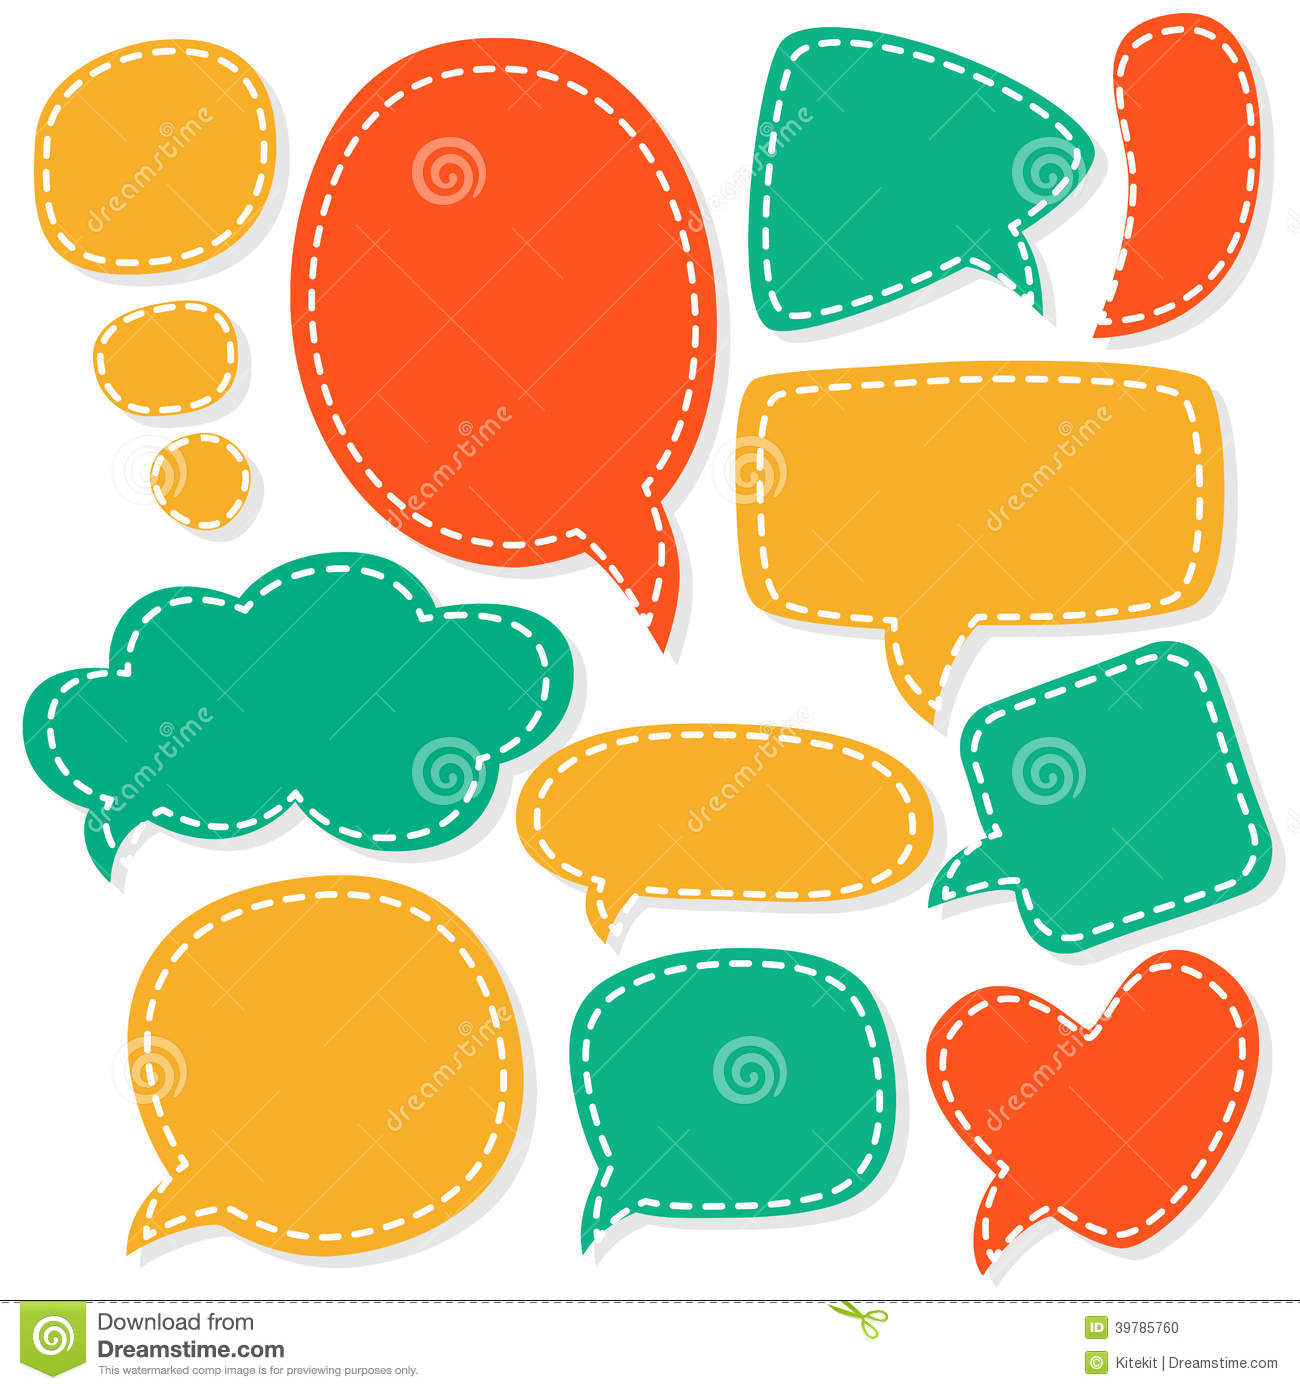 Cartoon speech bubbles. Different sizes and forms.